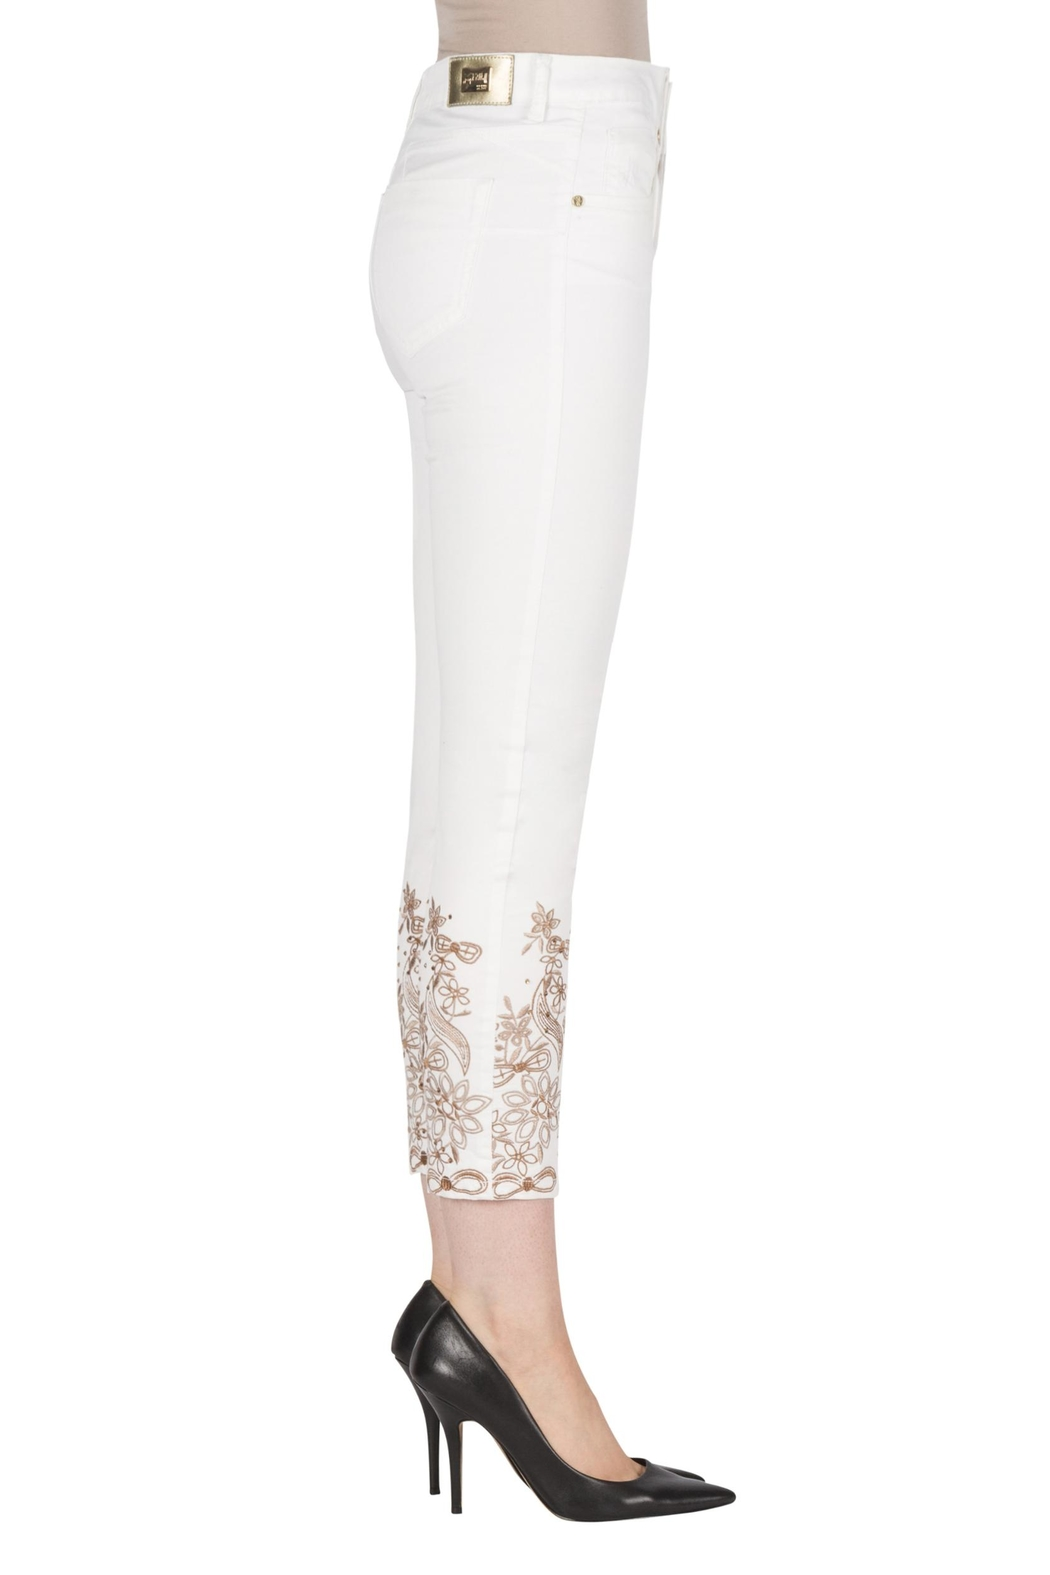 Joseph Ribkoff Embroidered Leg Jean - Front Cropped Image